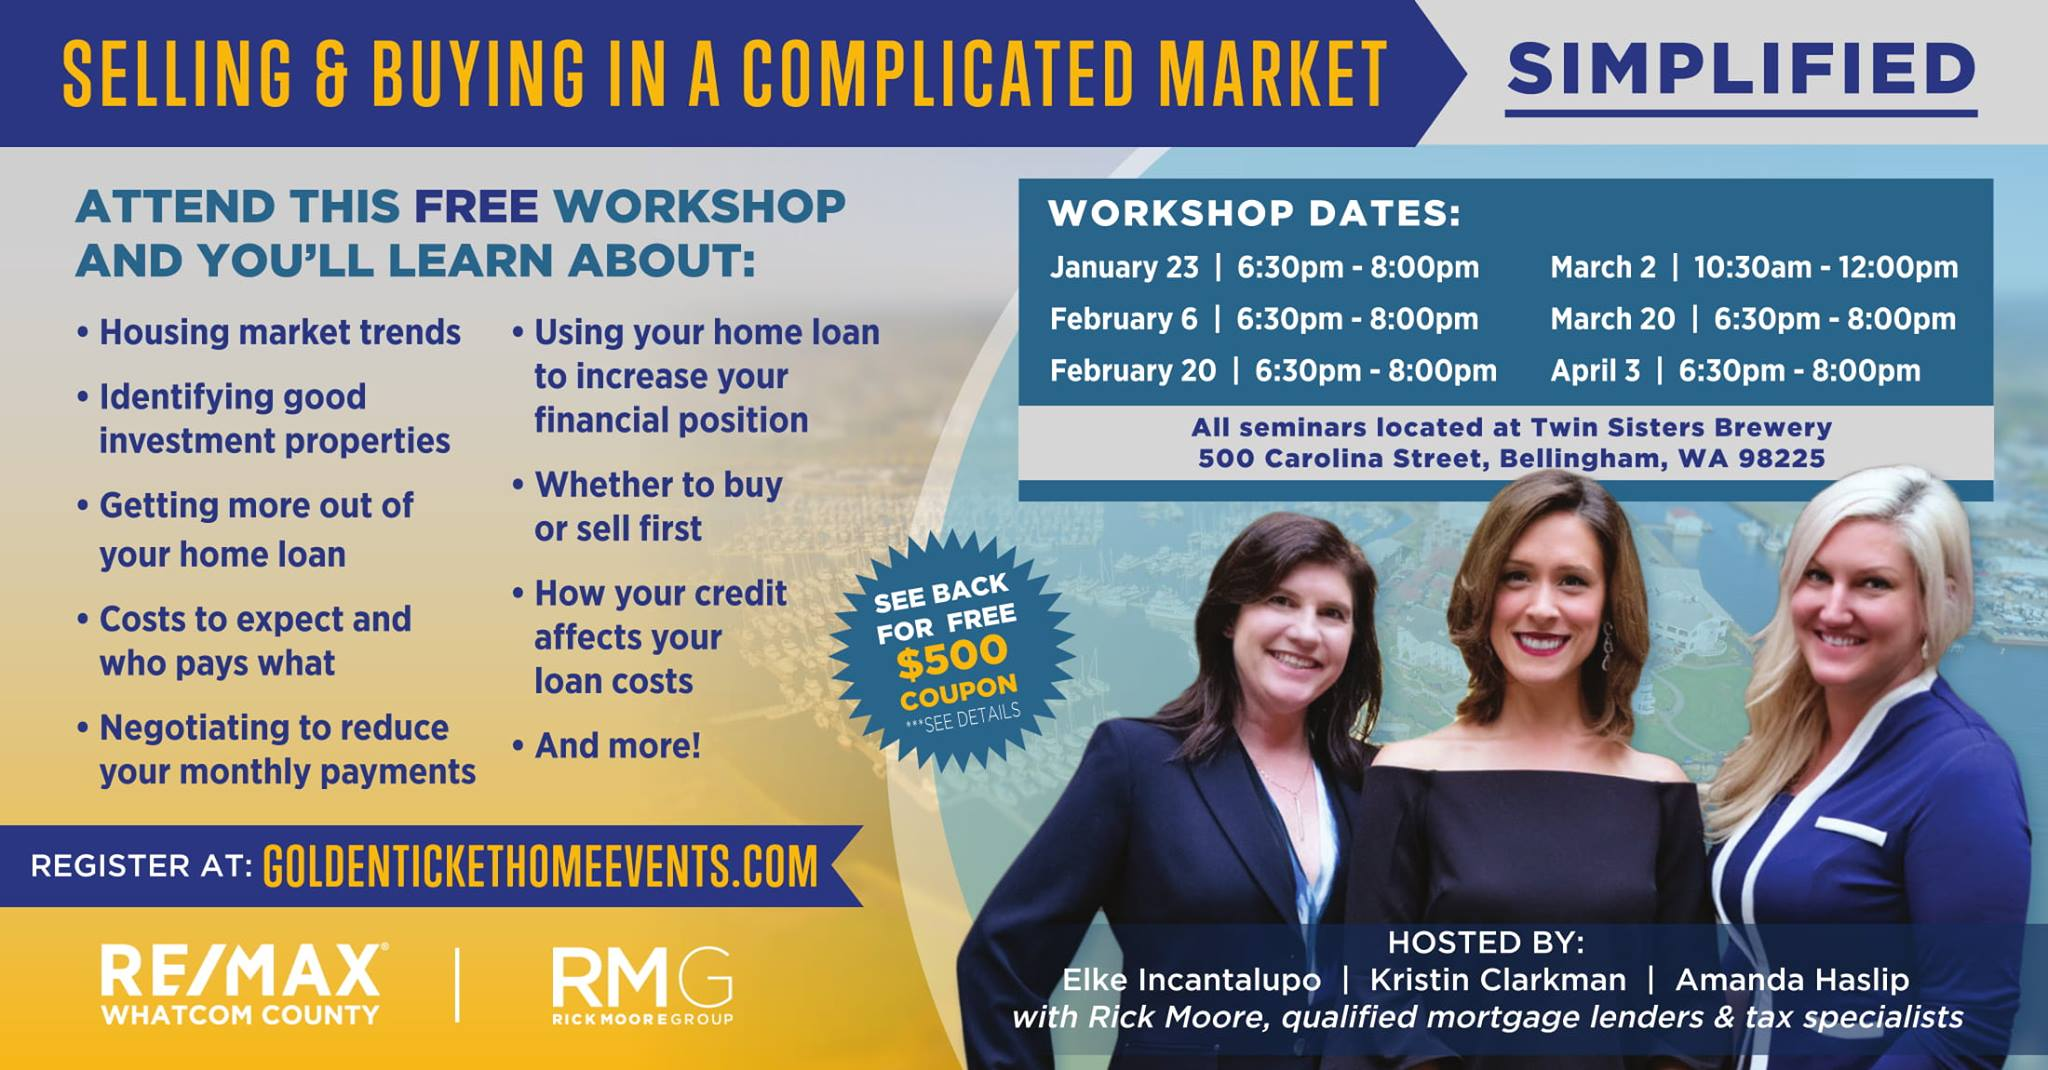 selling-buying-complicated-market-real-estate-workshop-simplified-golden-ticket-home-events-free-twin-sisters-brewery-bellingham-wa-whatcom-county